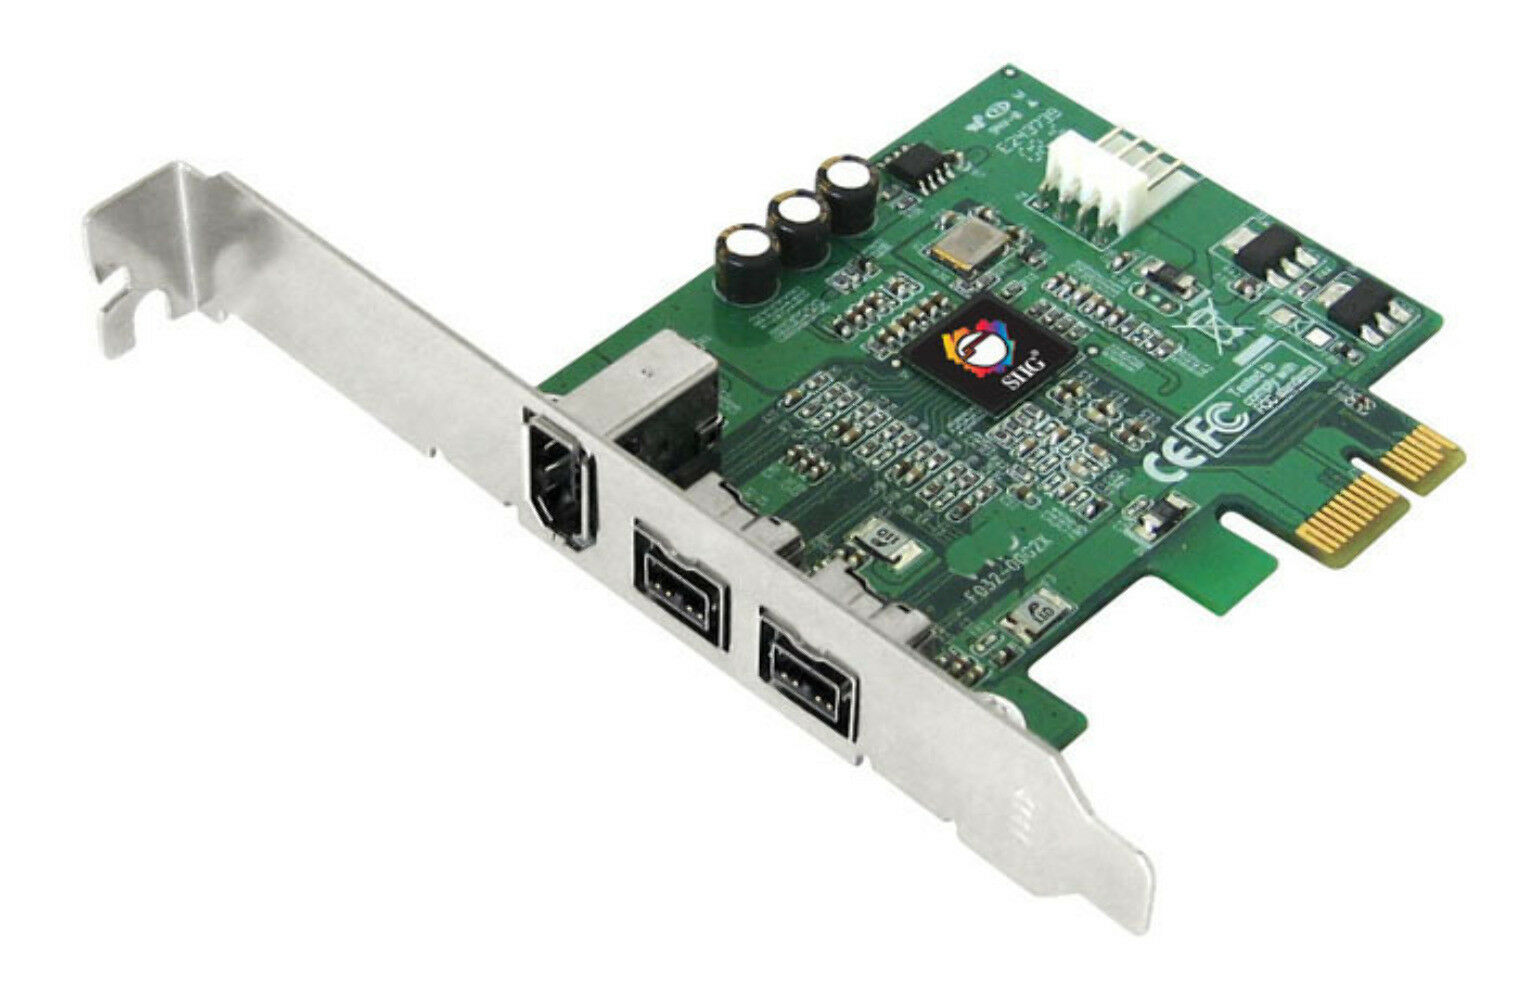 SIIG FireWire 800 3-Port PCIe x1 Card Adapter, Brackets Included (NN-E38012-S3)